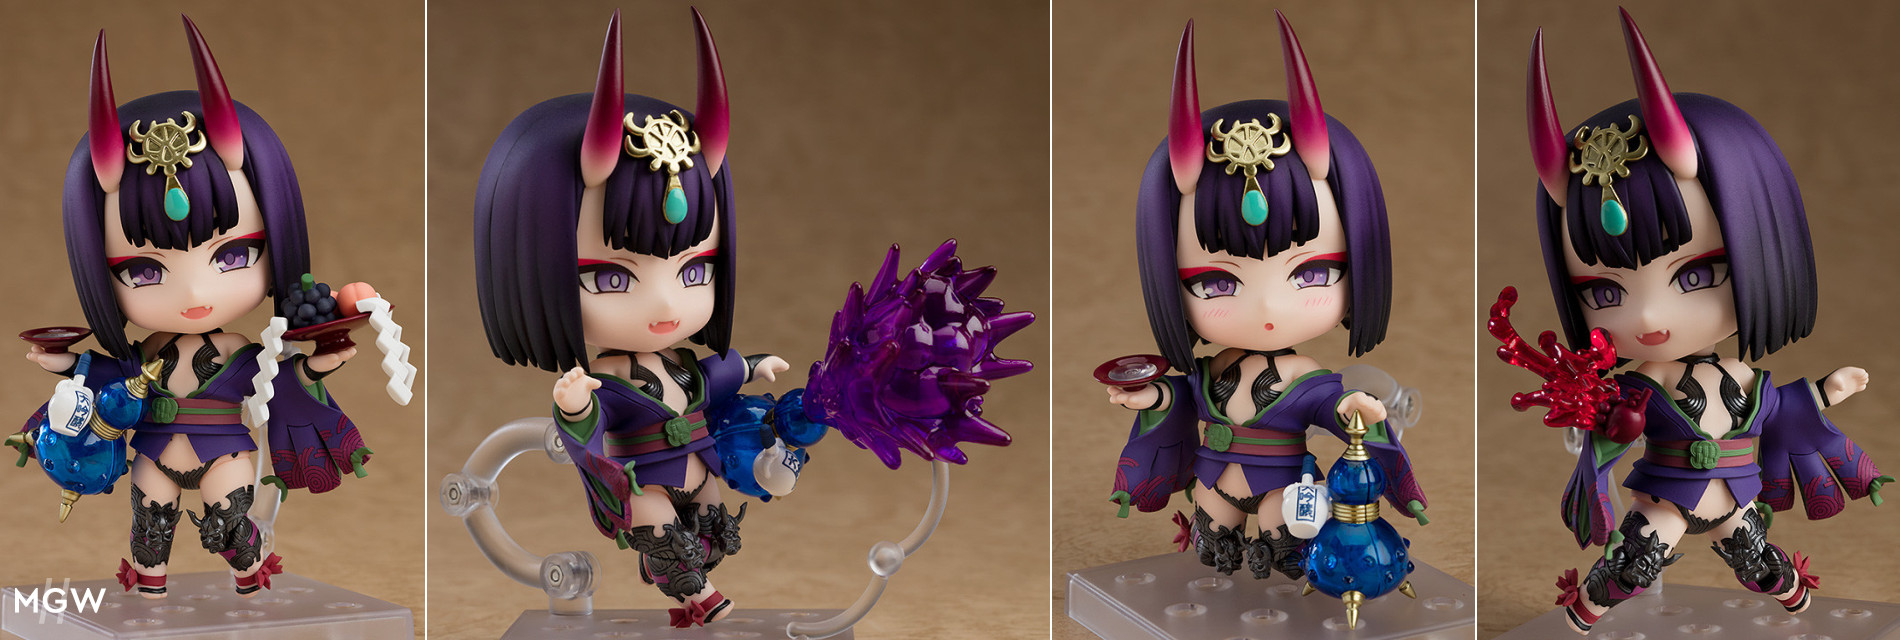 Nendoroid Assassin/Shuten-Douji by Good Smile Company from Fate/Grand Order MyGrailWatch Anime Figure Guide